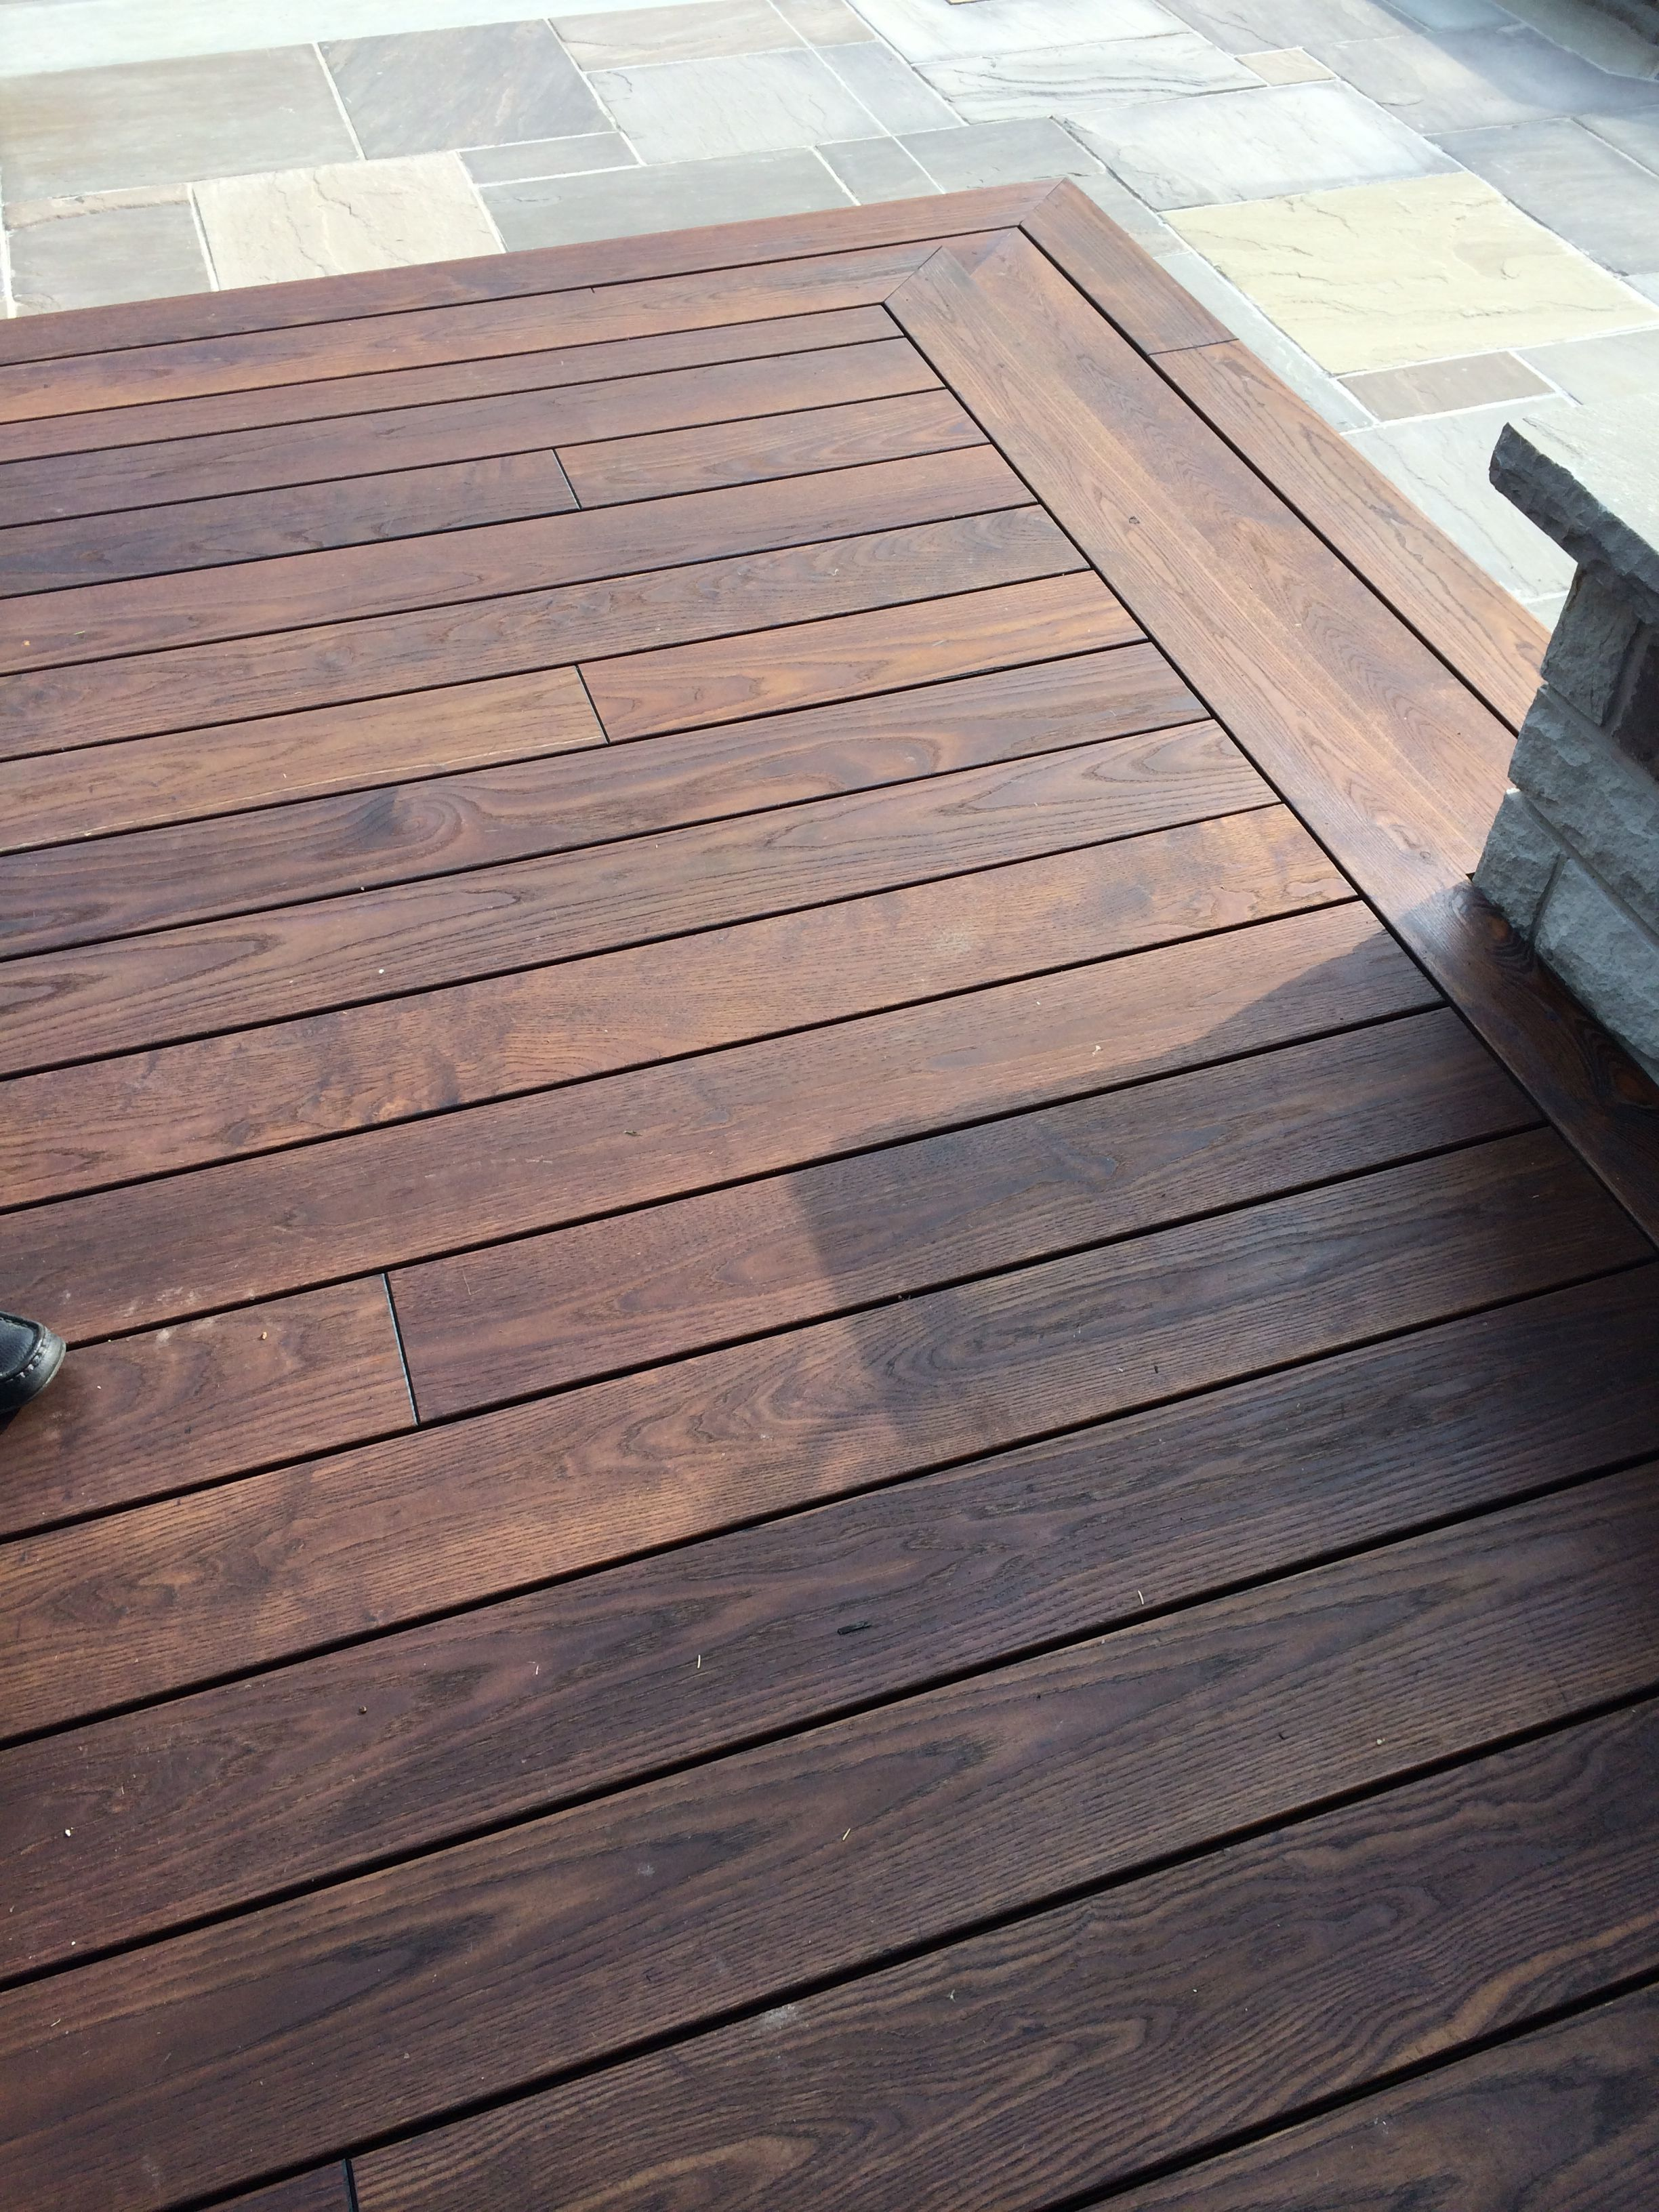 Thermory Ash Decking...Call Peter Bray on 0412068464 for product sales and  information.